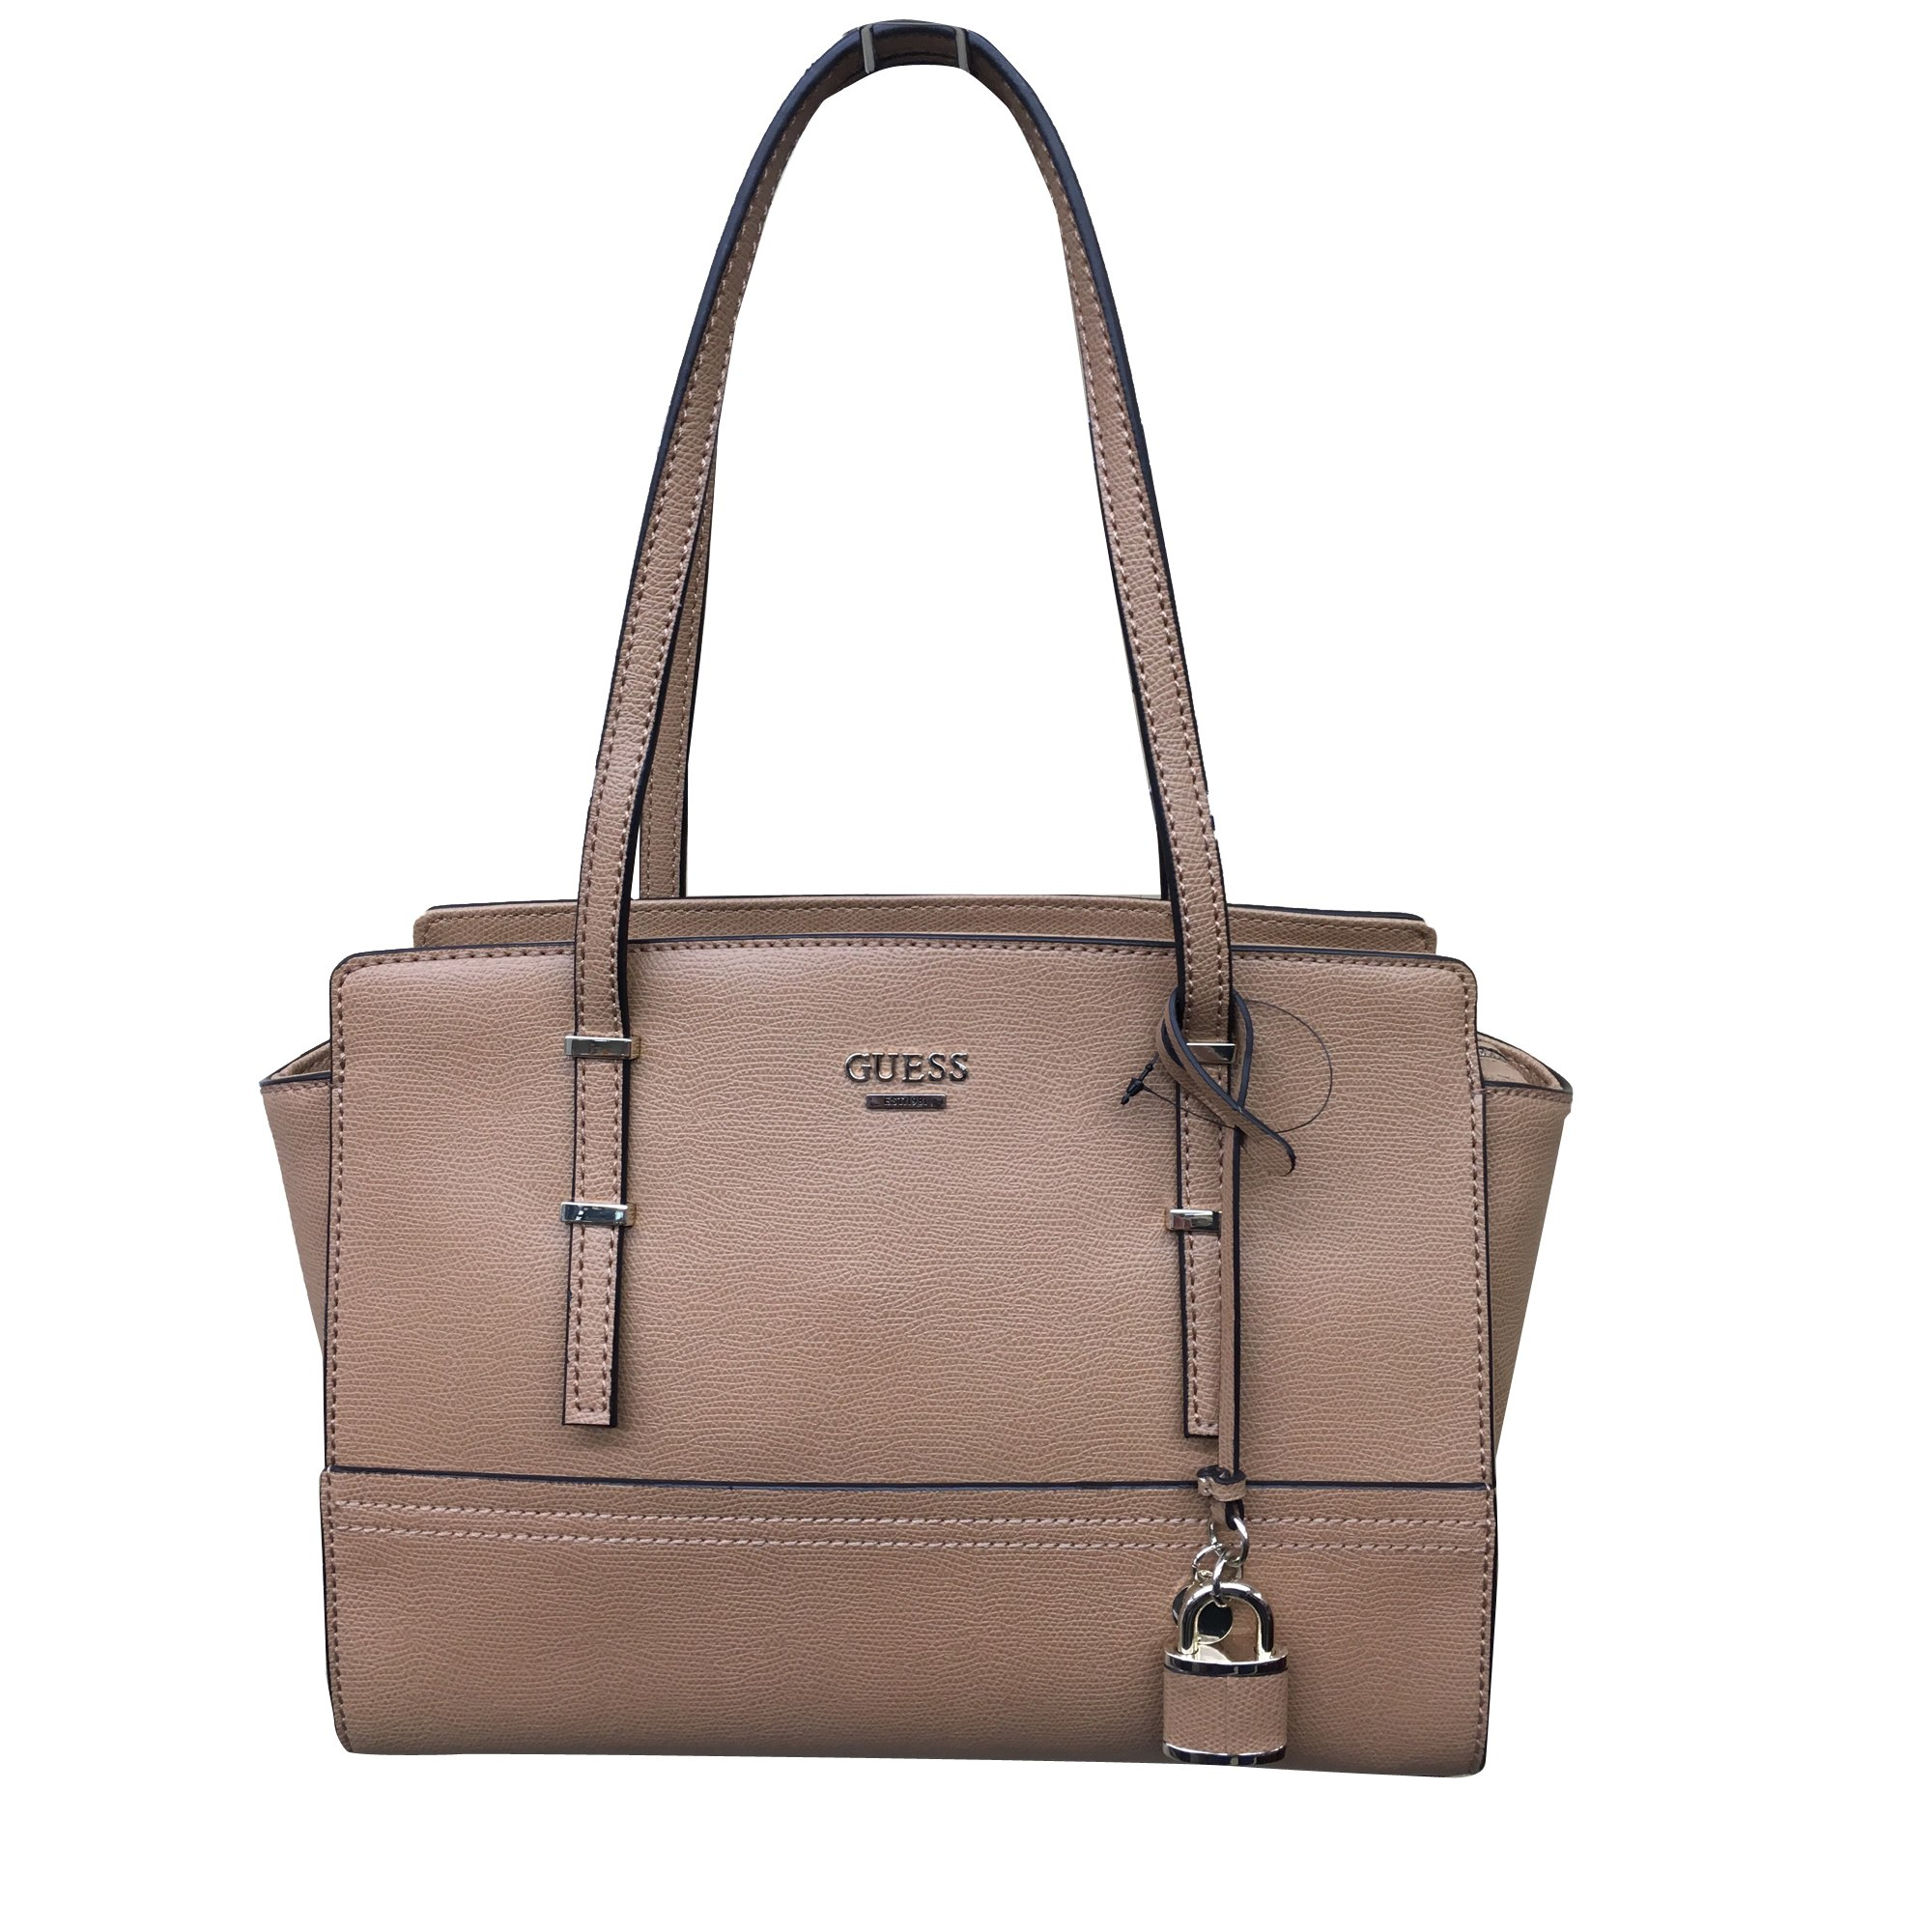 Leather Handbag GUESS Brown